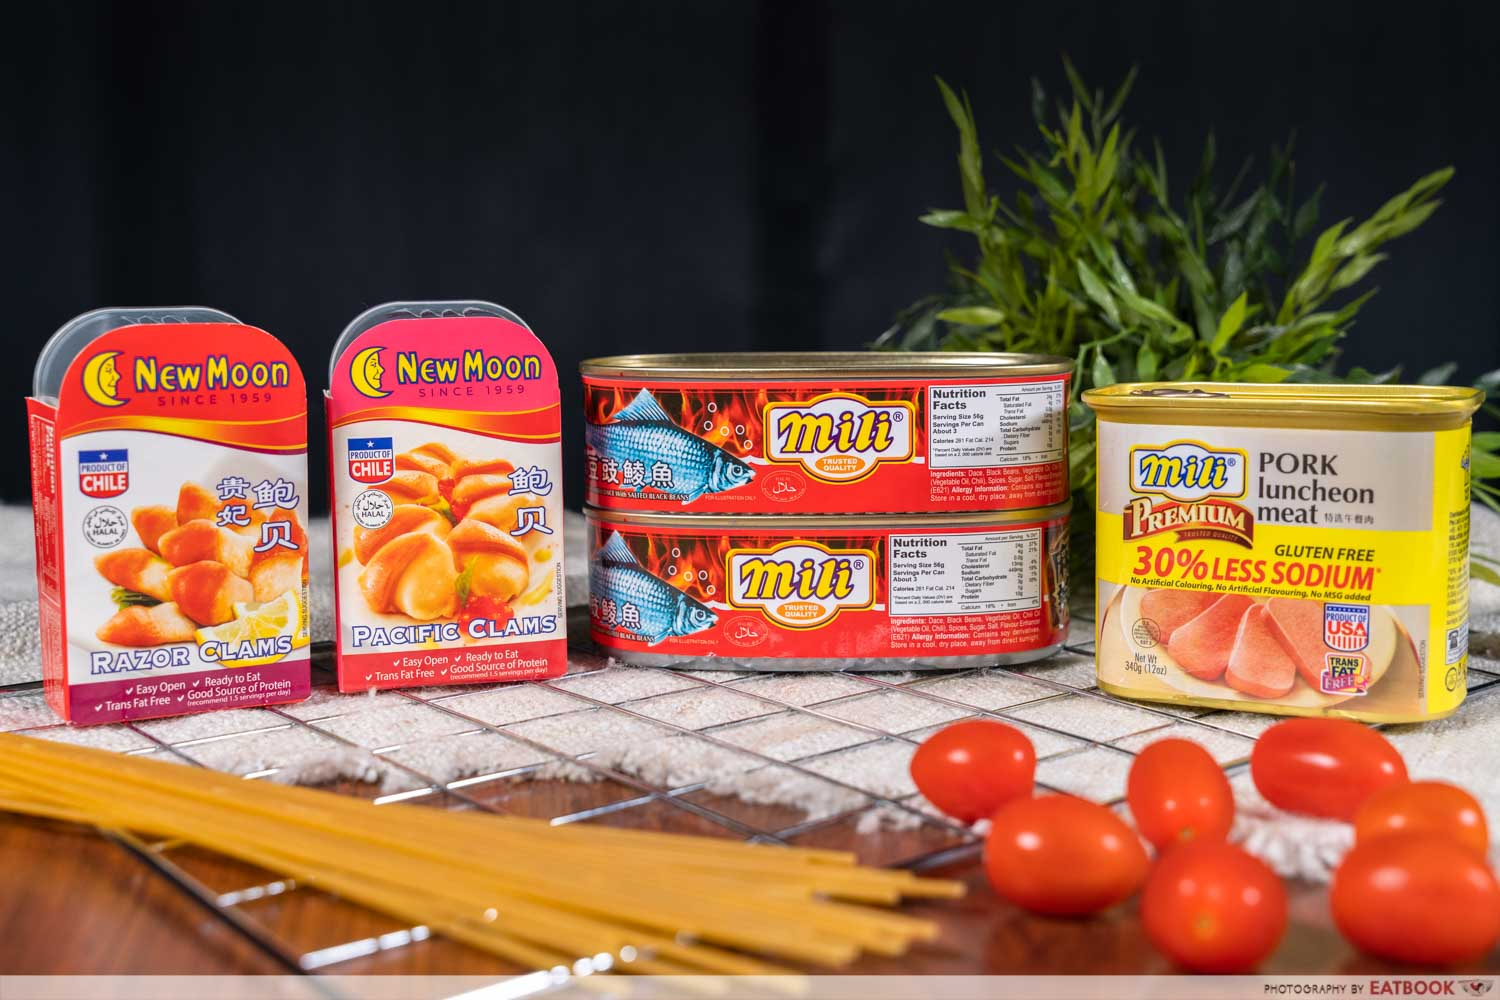 mili and new moon canned products